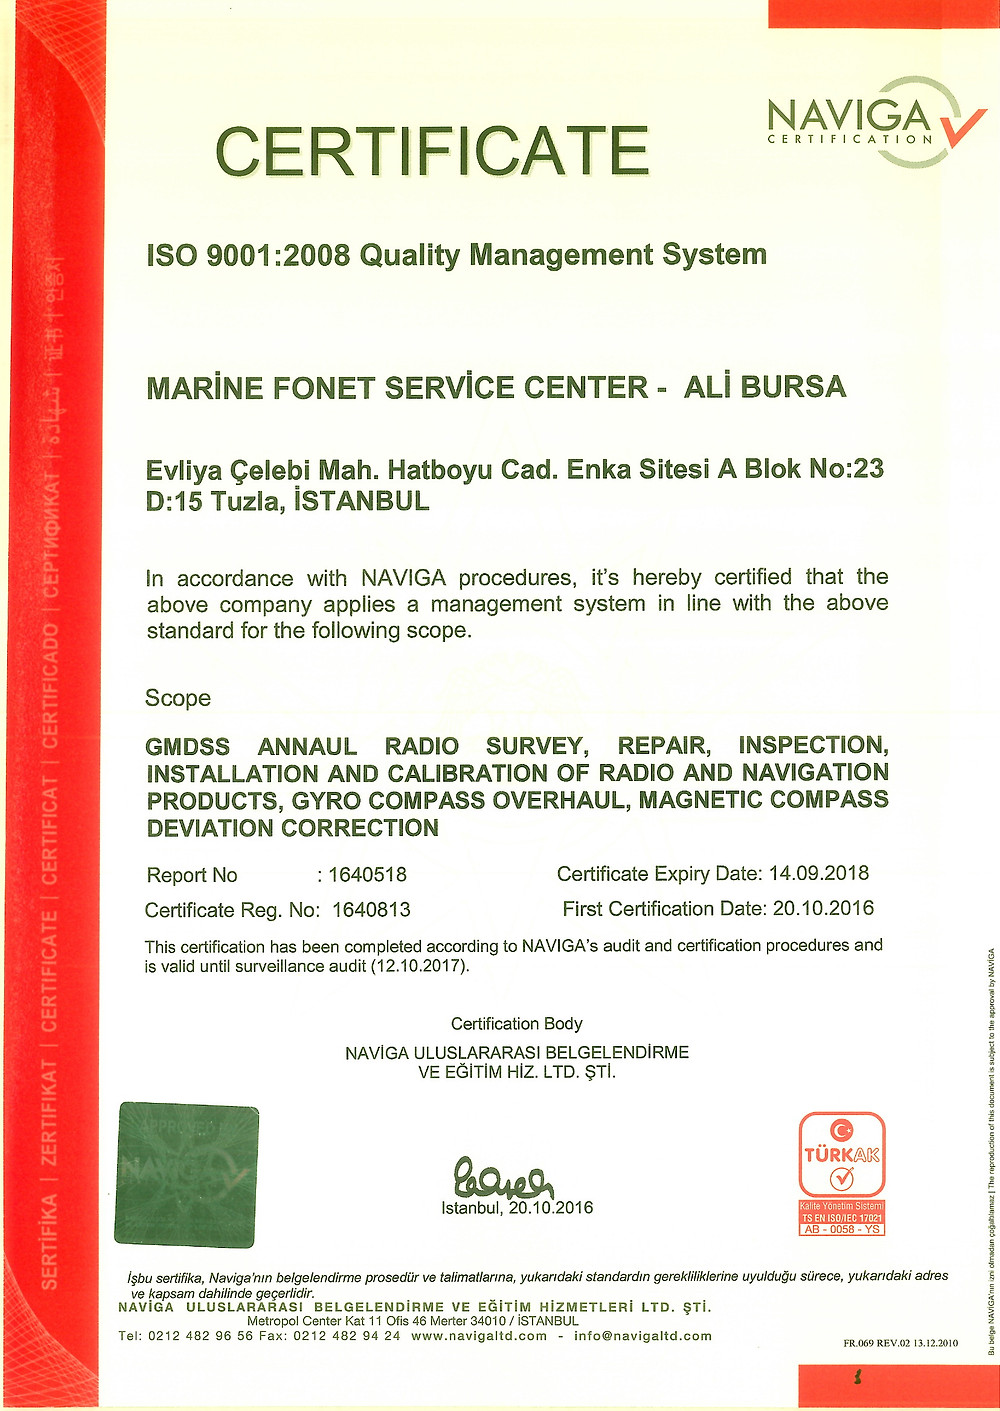 ISO 9001 2008 QUALIT CERTIFICATE